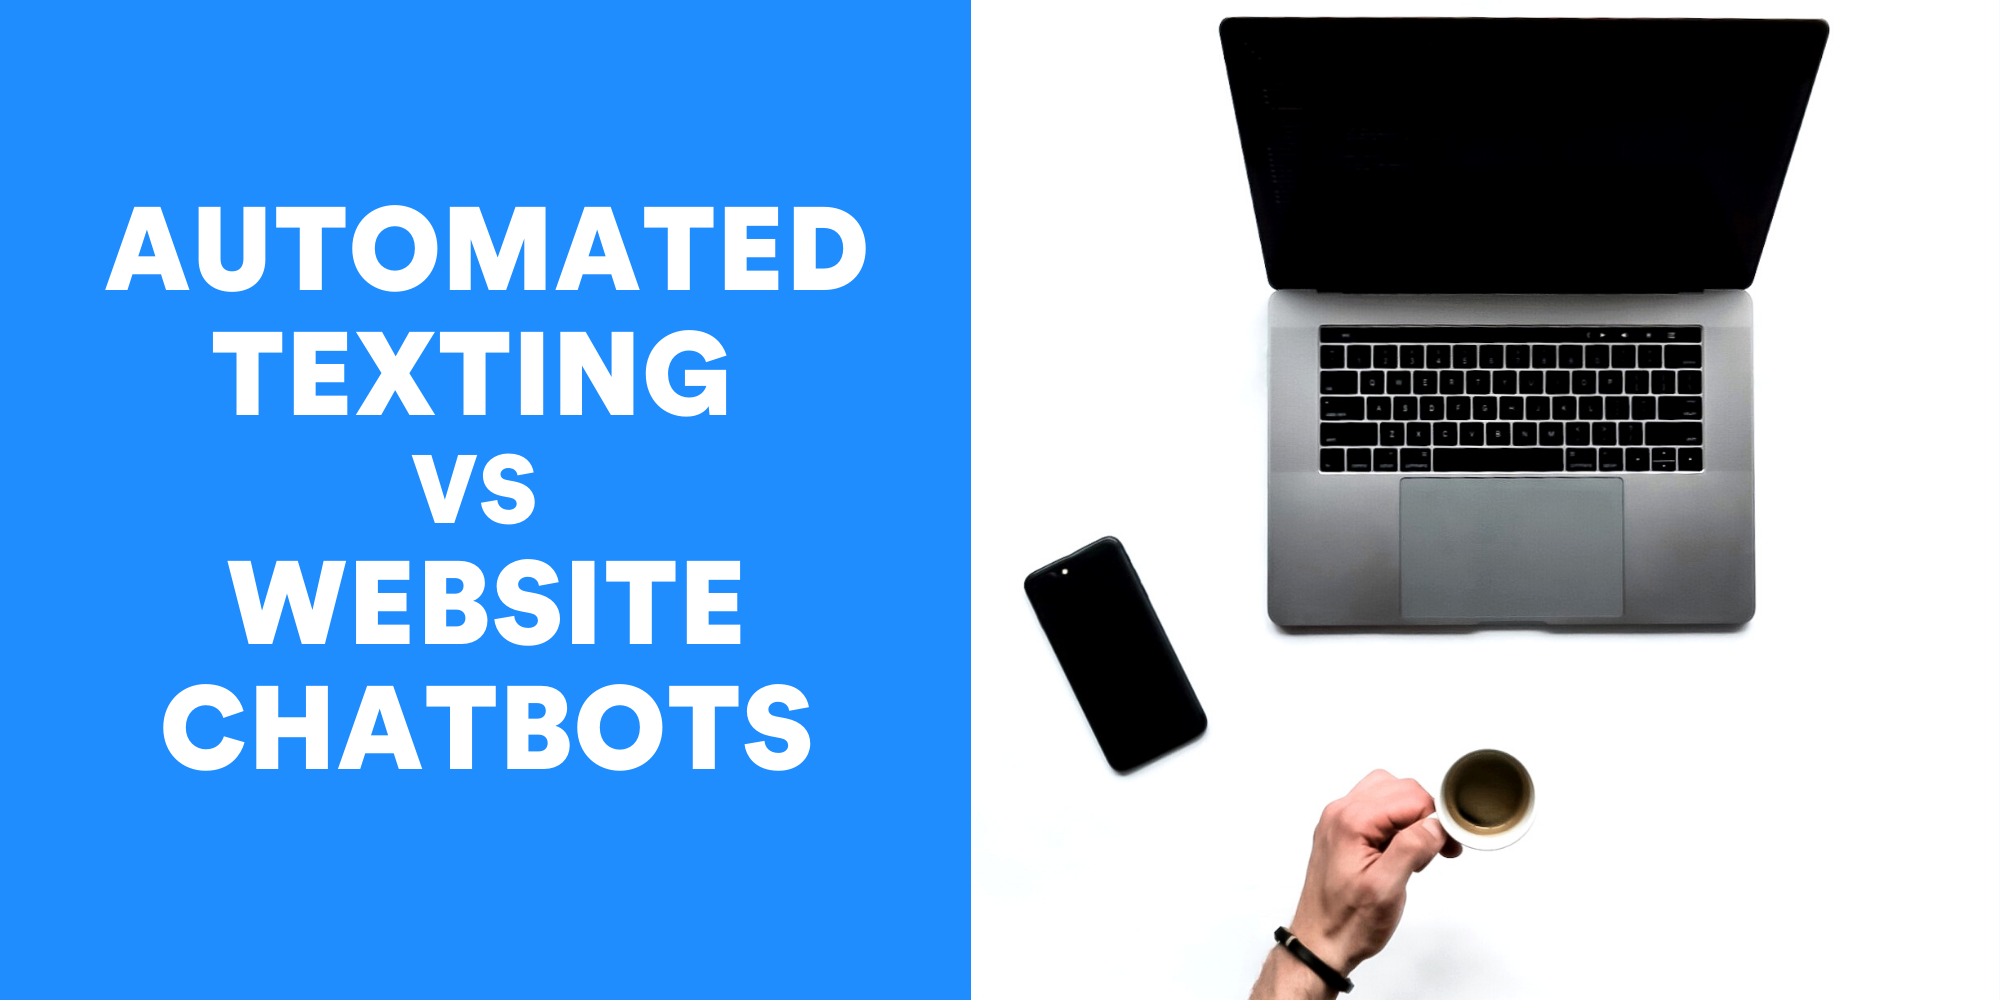 Why SMS bots are better than website chatbots